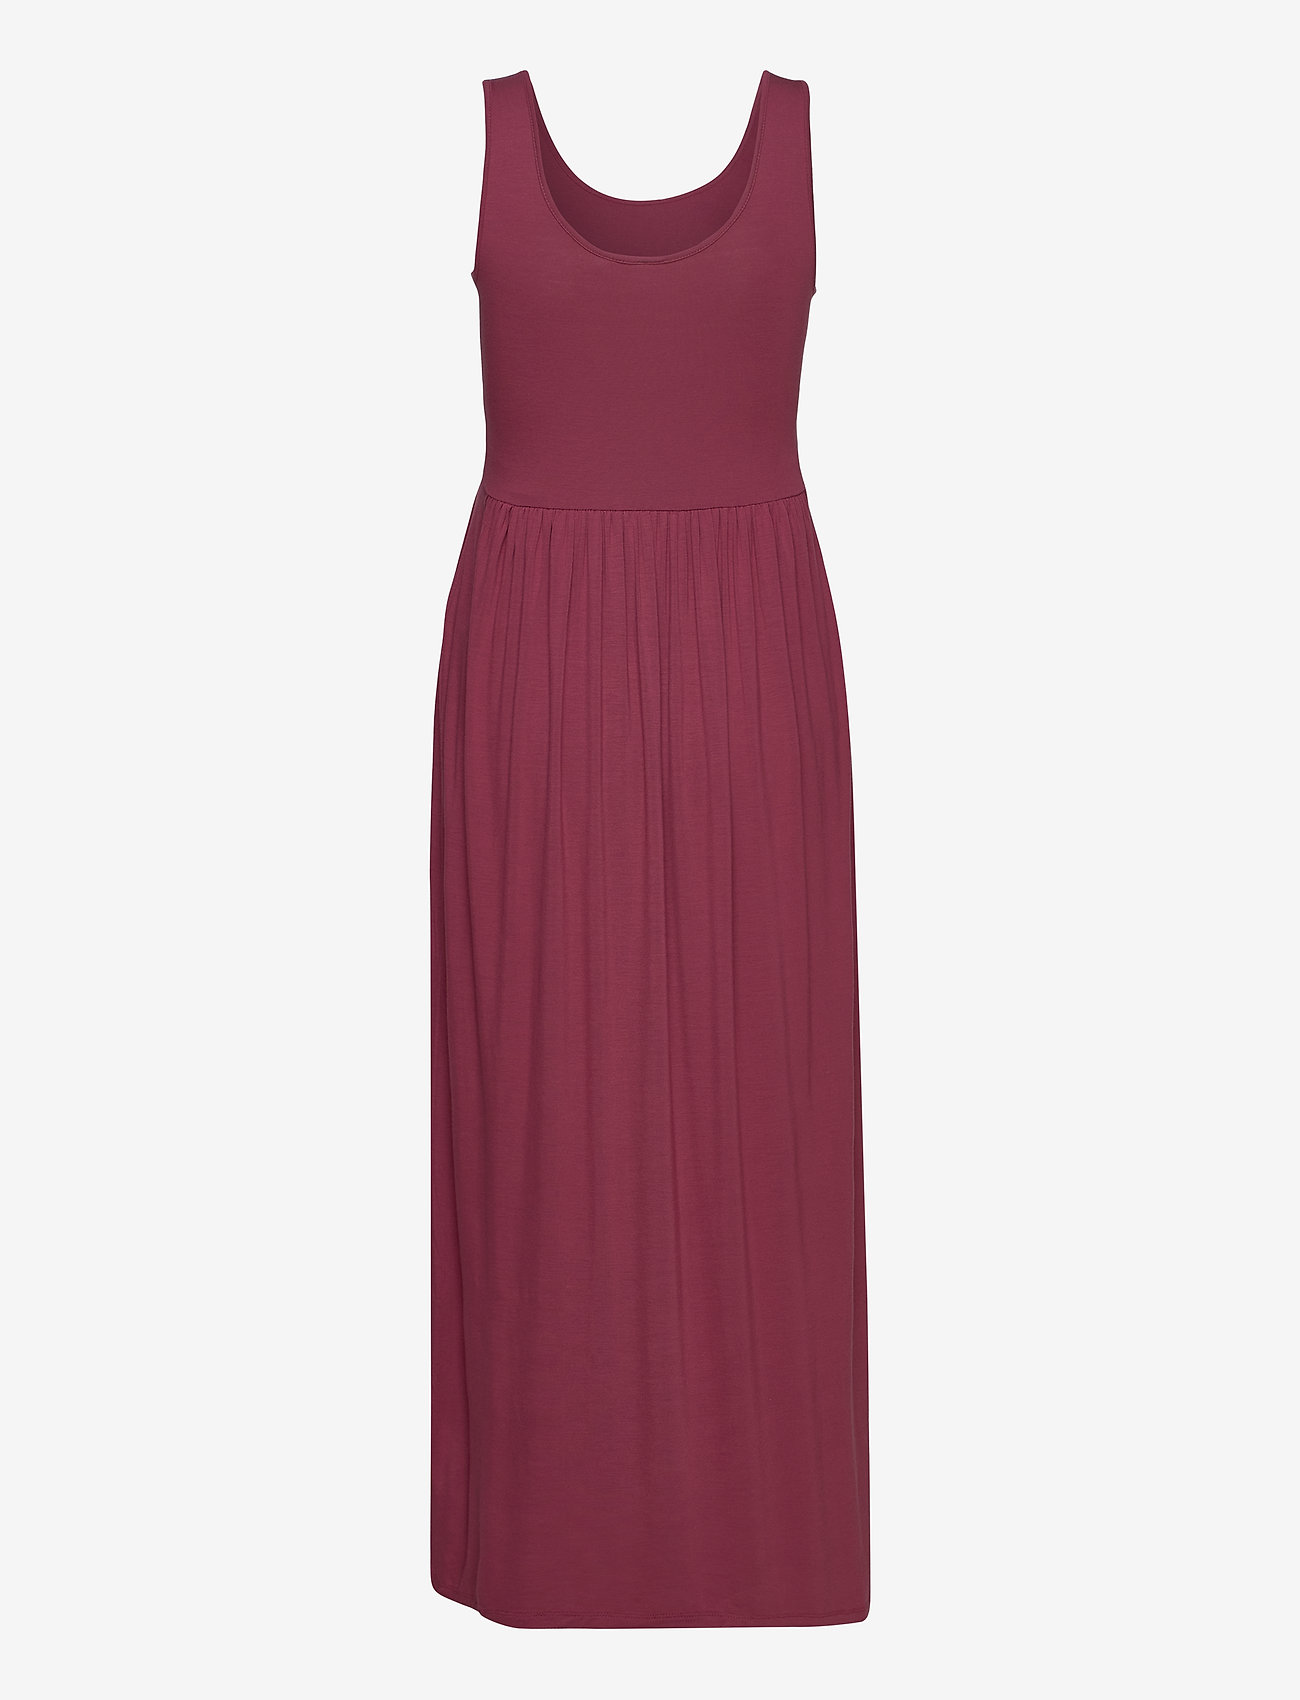 Gap Maternity Scoopneck Maxi Dress - Robes